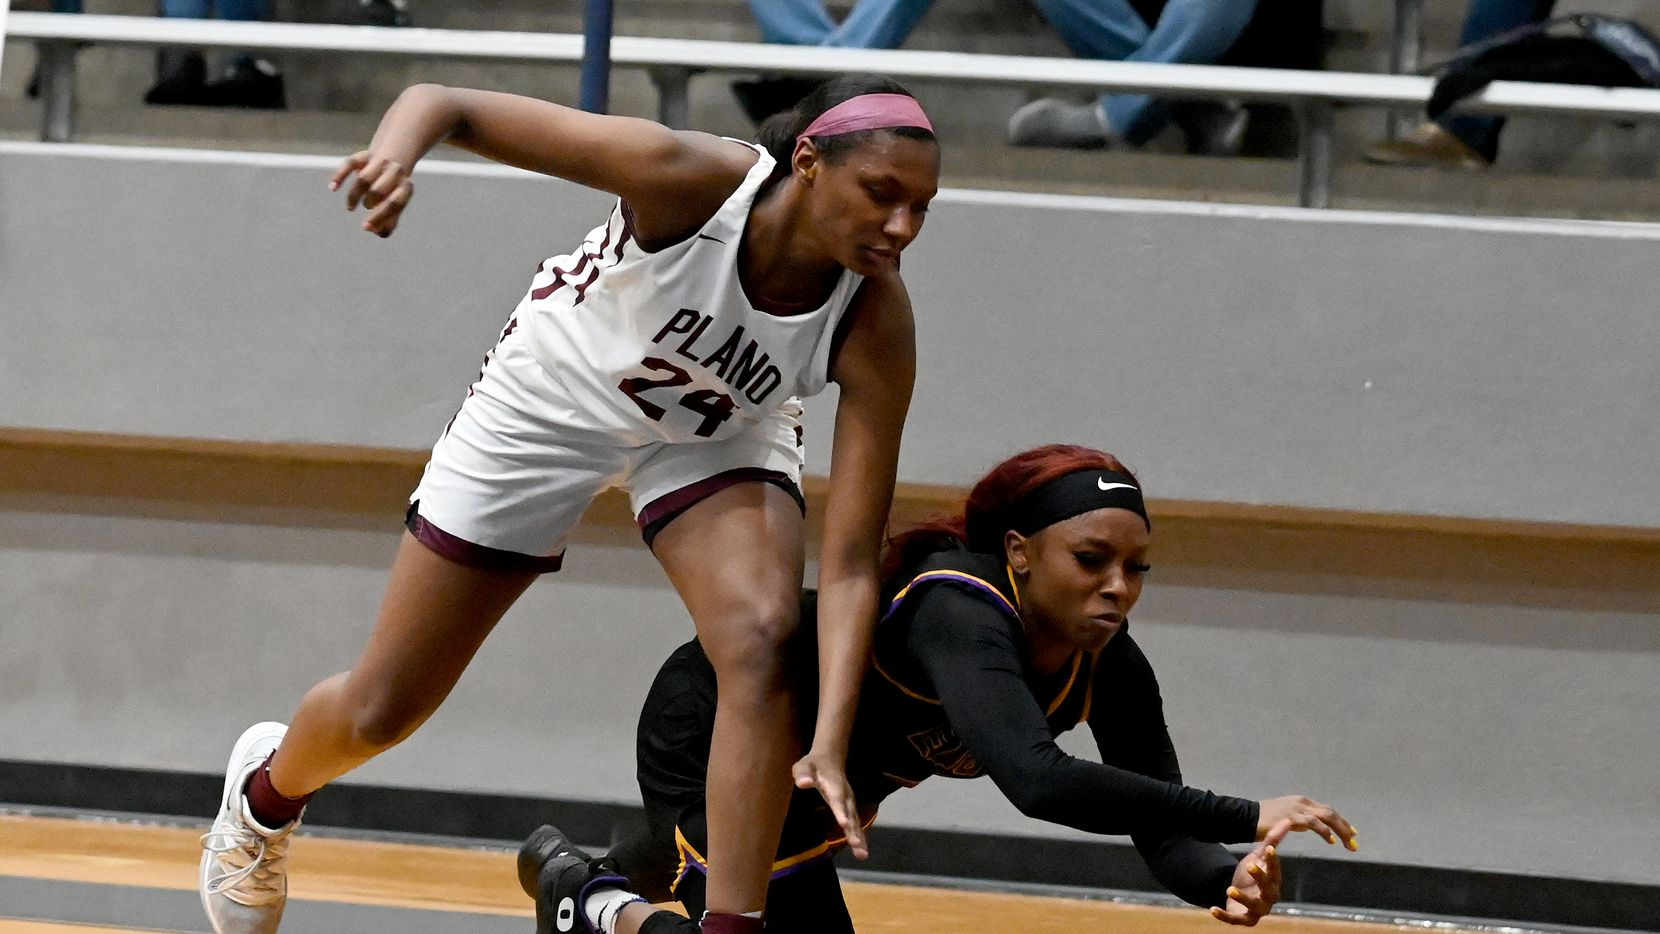 Richardson's Callie Cooper goes after a loose ball with Plano's Amaya Brannon (24) in the second half of a Class 6A girls high school playoff basketball game between Plano vs. Richardson, Monday, Feb. 22, 2020, in Carrollton, Texas.